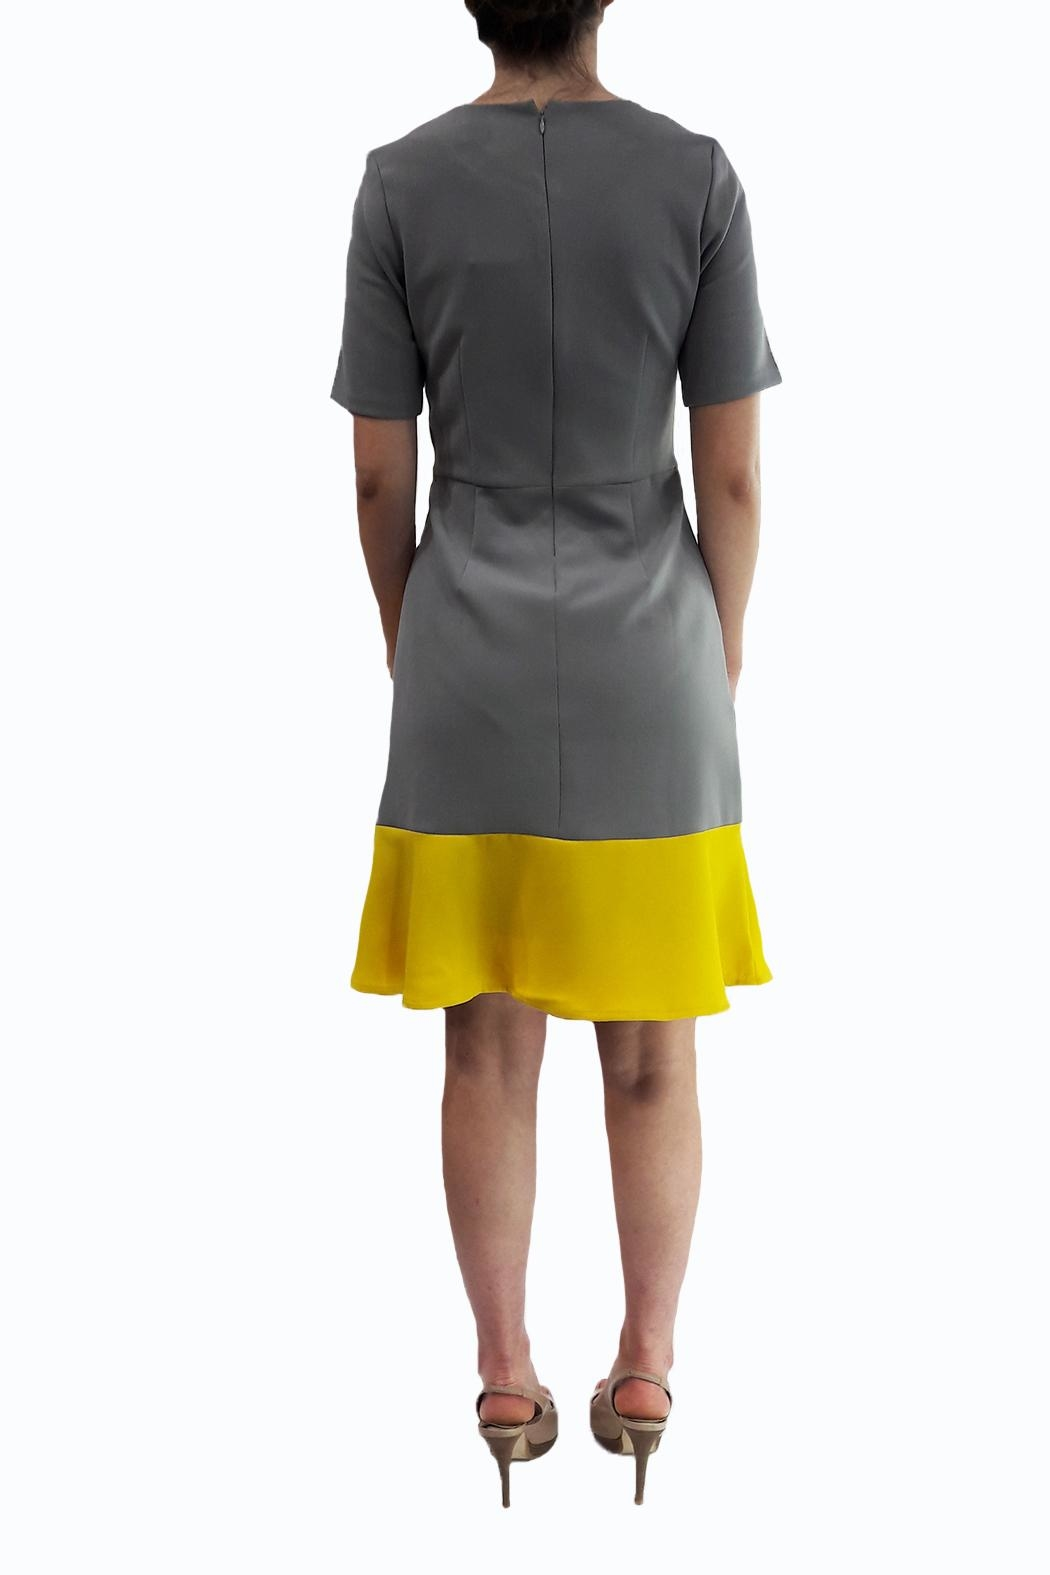 Emily lovelock Geometric Dress - Side Cropped Image